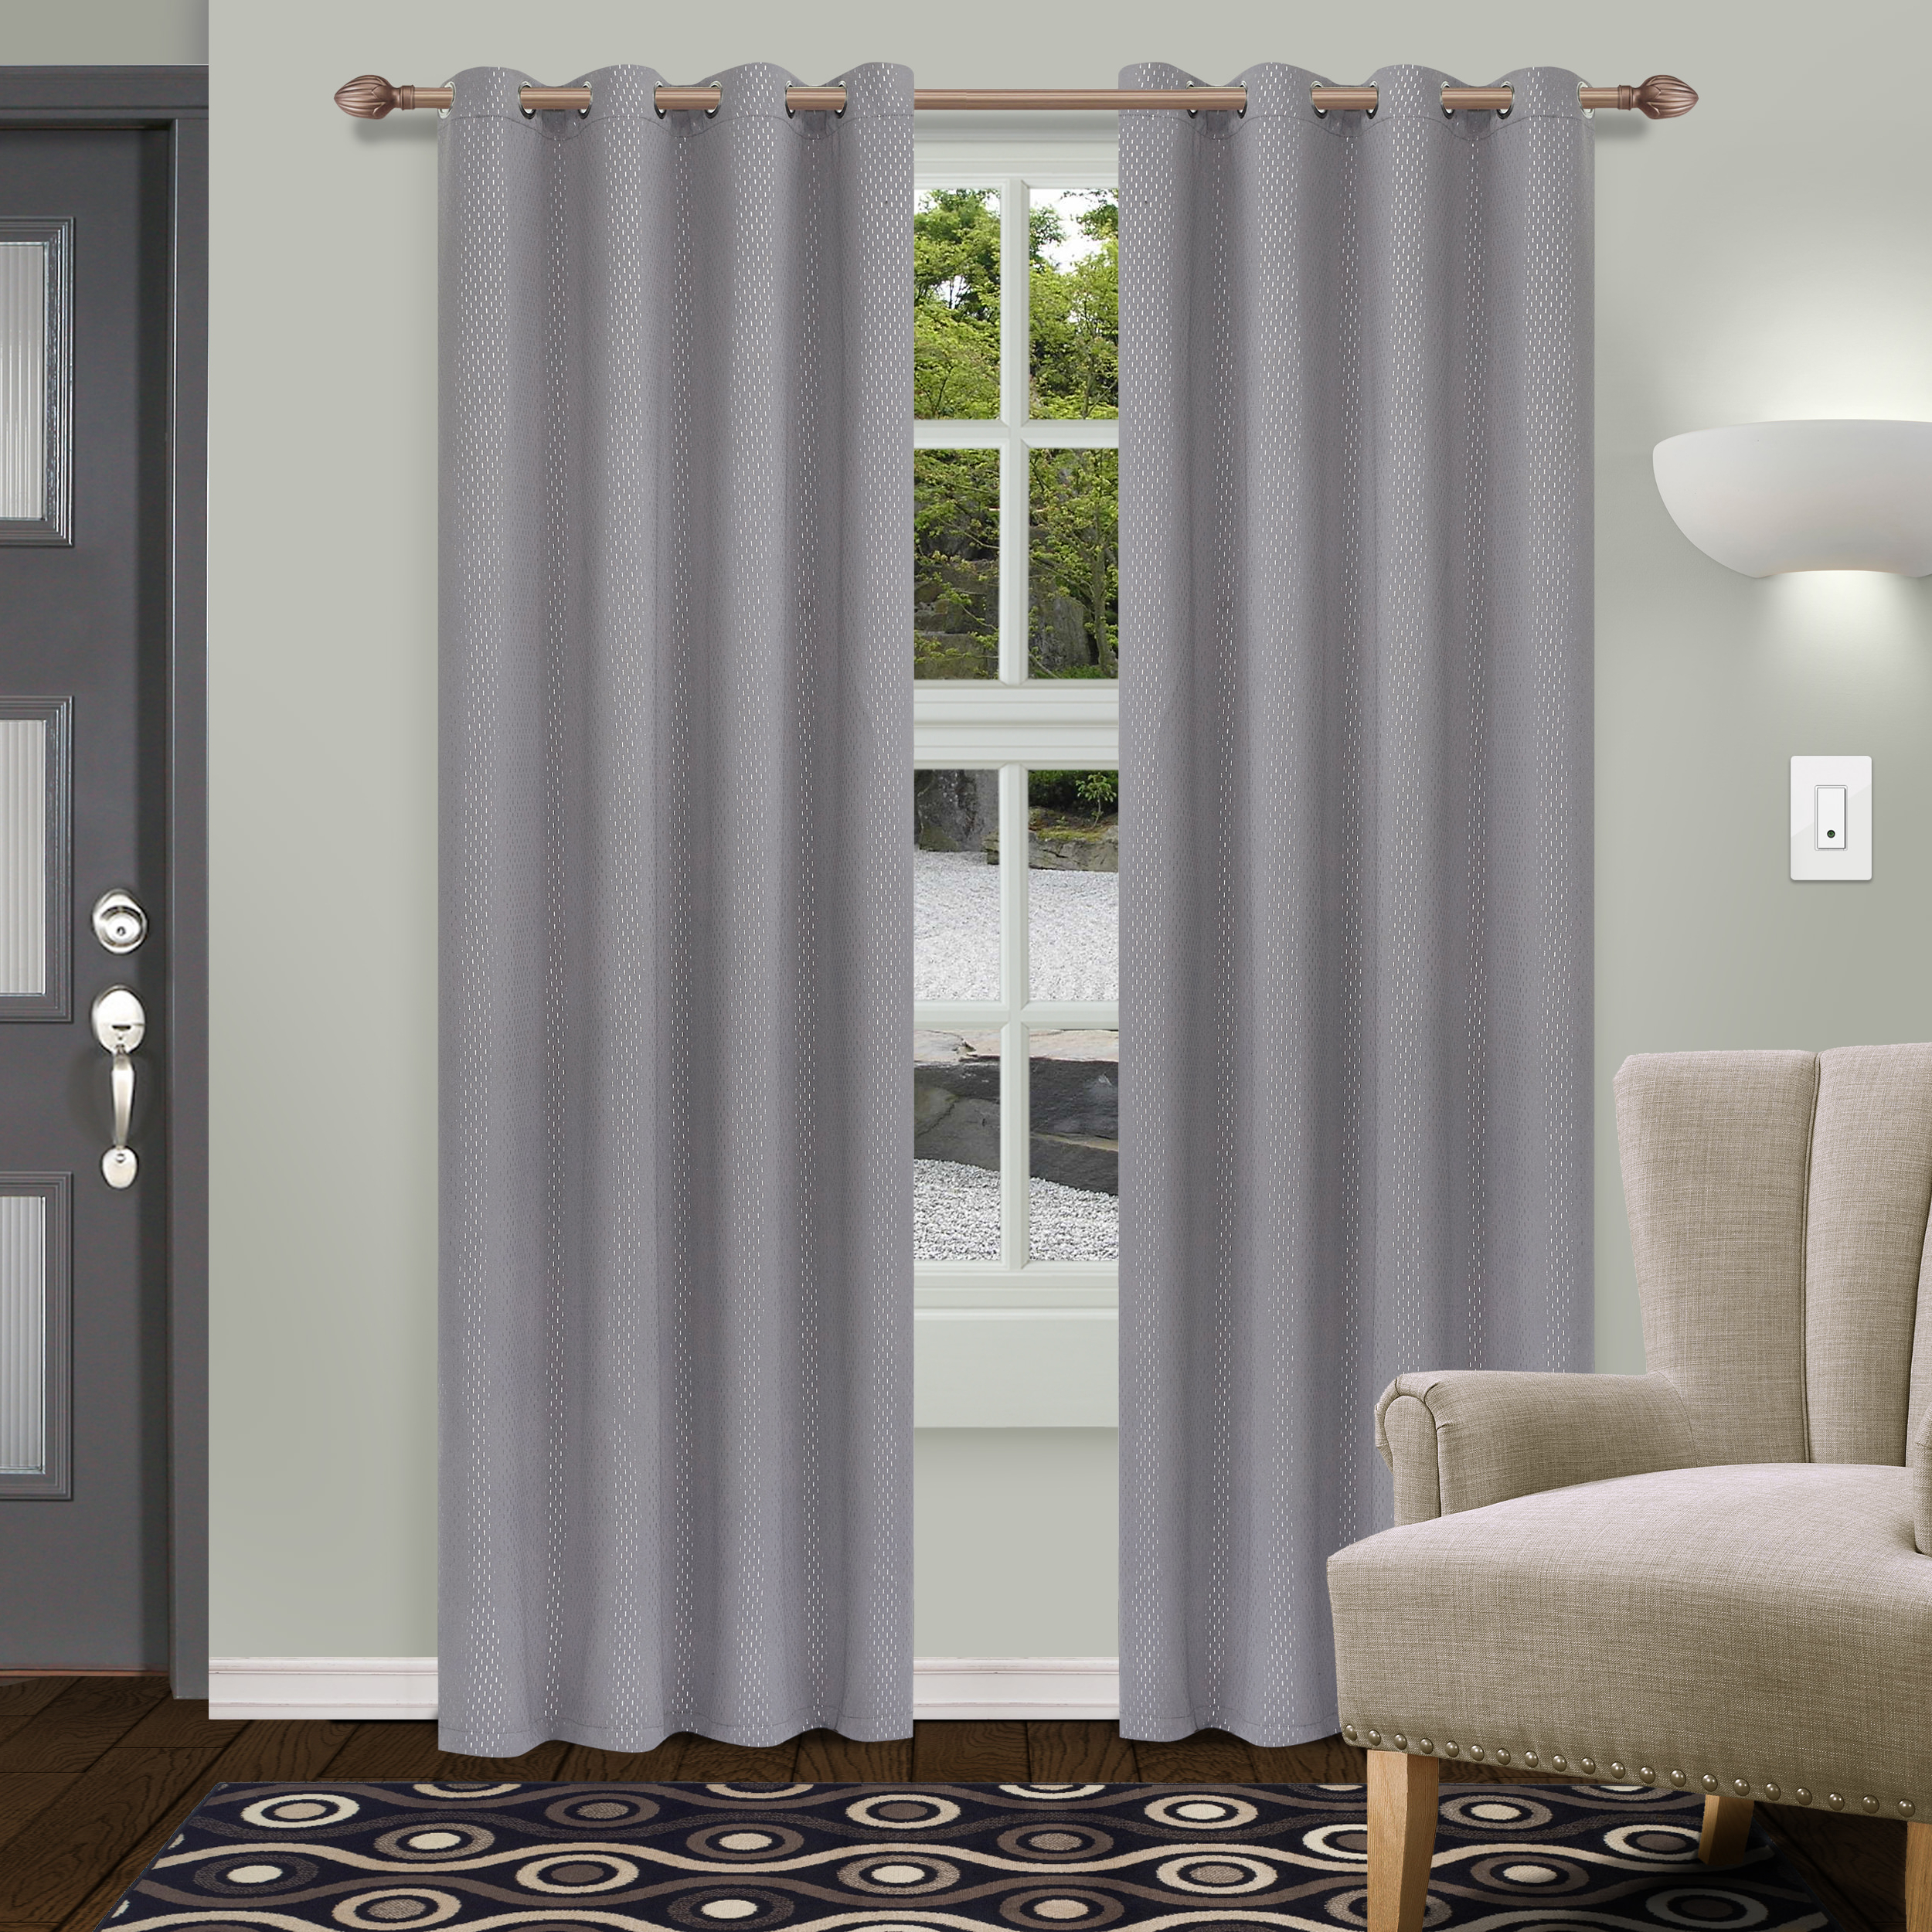 2021 Superior Solid Insulated Thermal Blackout Grommet Curtain Panel Pairs With Regard To Superior Shimmer Textured Blackout Curtain Set Of 2, Insulated Panel With Grommet Top – Walmart (View 15 of 20)